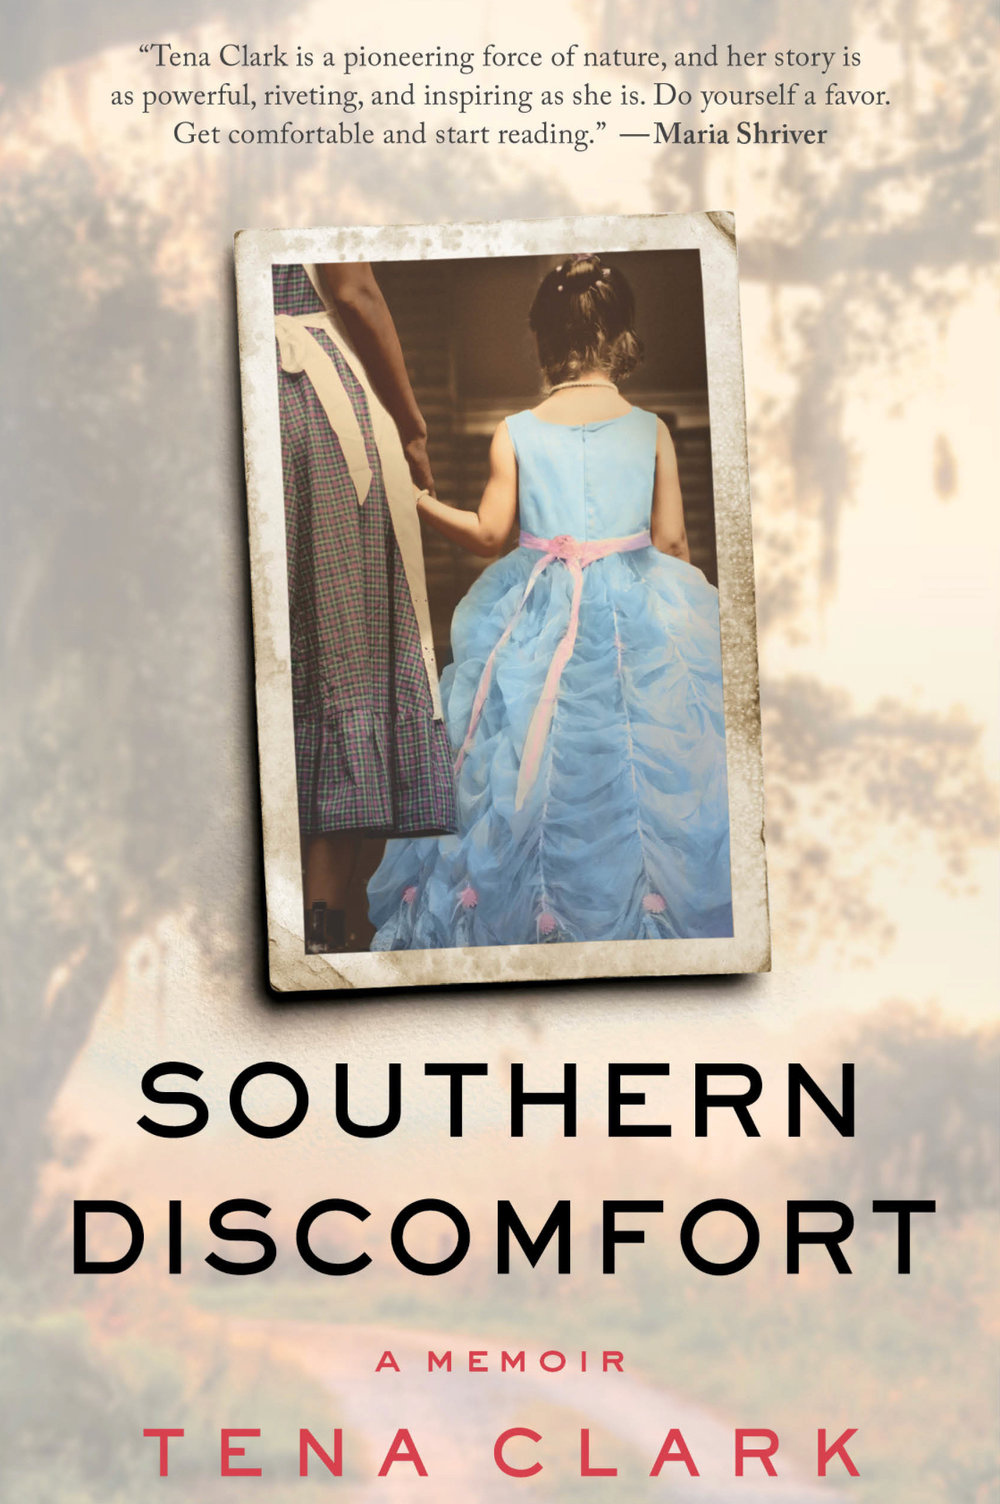 Southern Discomfort  by Tena Clark  Touchstone --- October 2, 2018